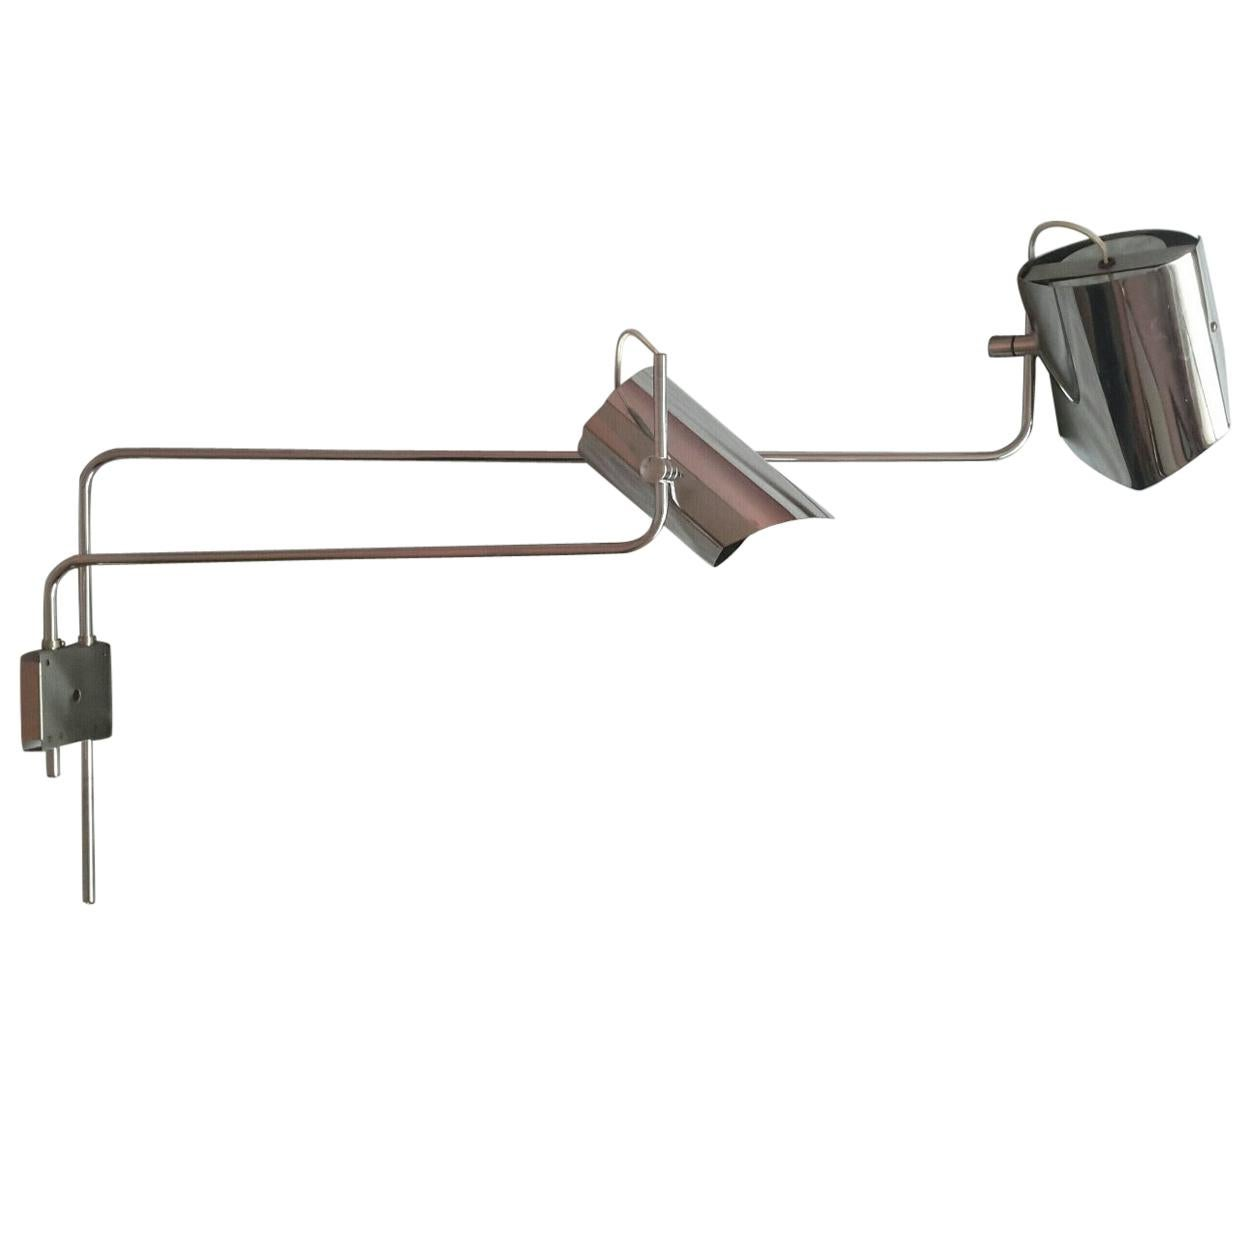 Rare and Large Chromed Wall Lamp, Italy, 1970s